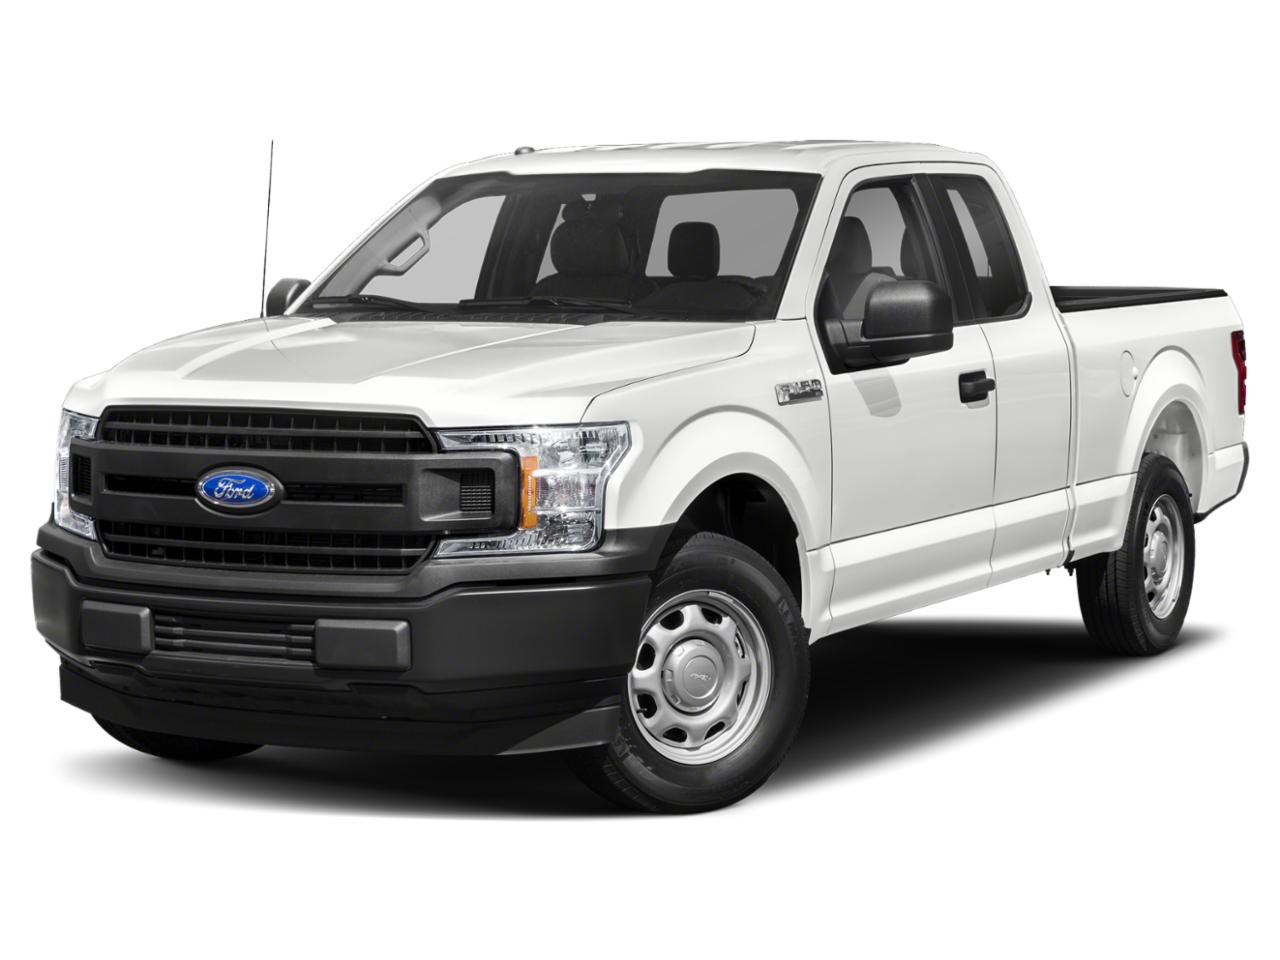 Used 2018 Ford F-150 XLT with VIN 1FTEX1EP9JKD20954 for sale in Worthington, Minnesota